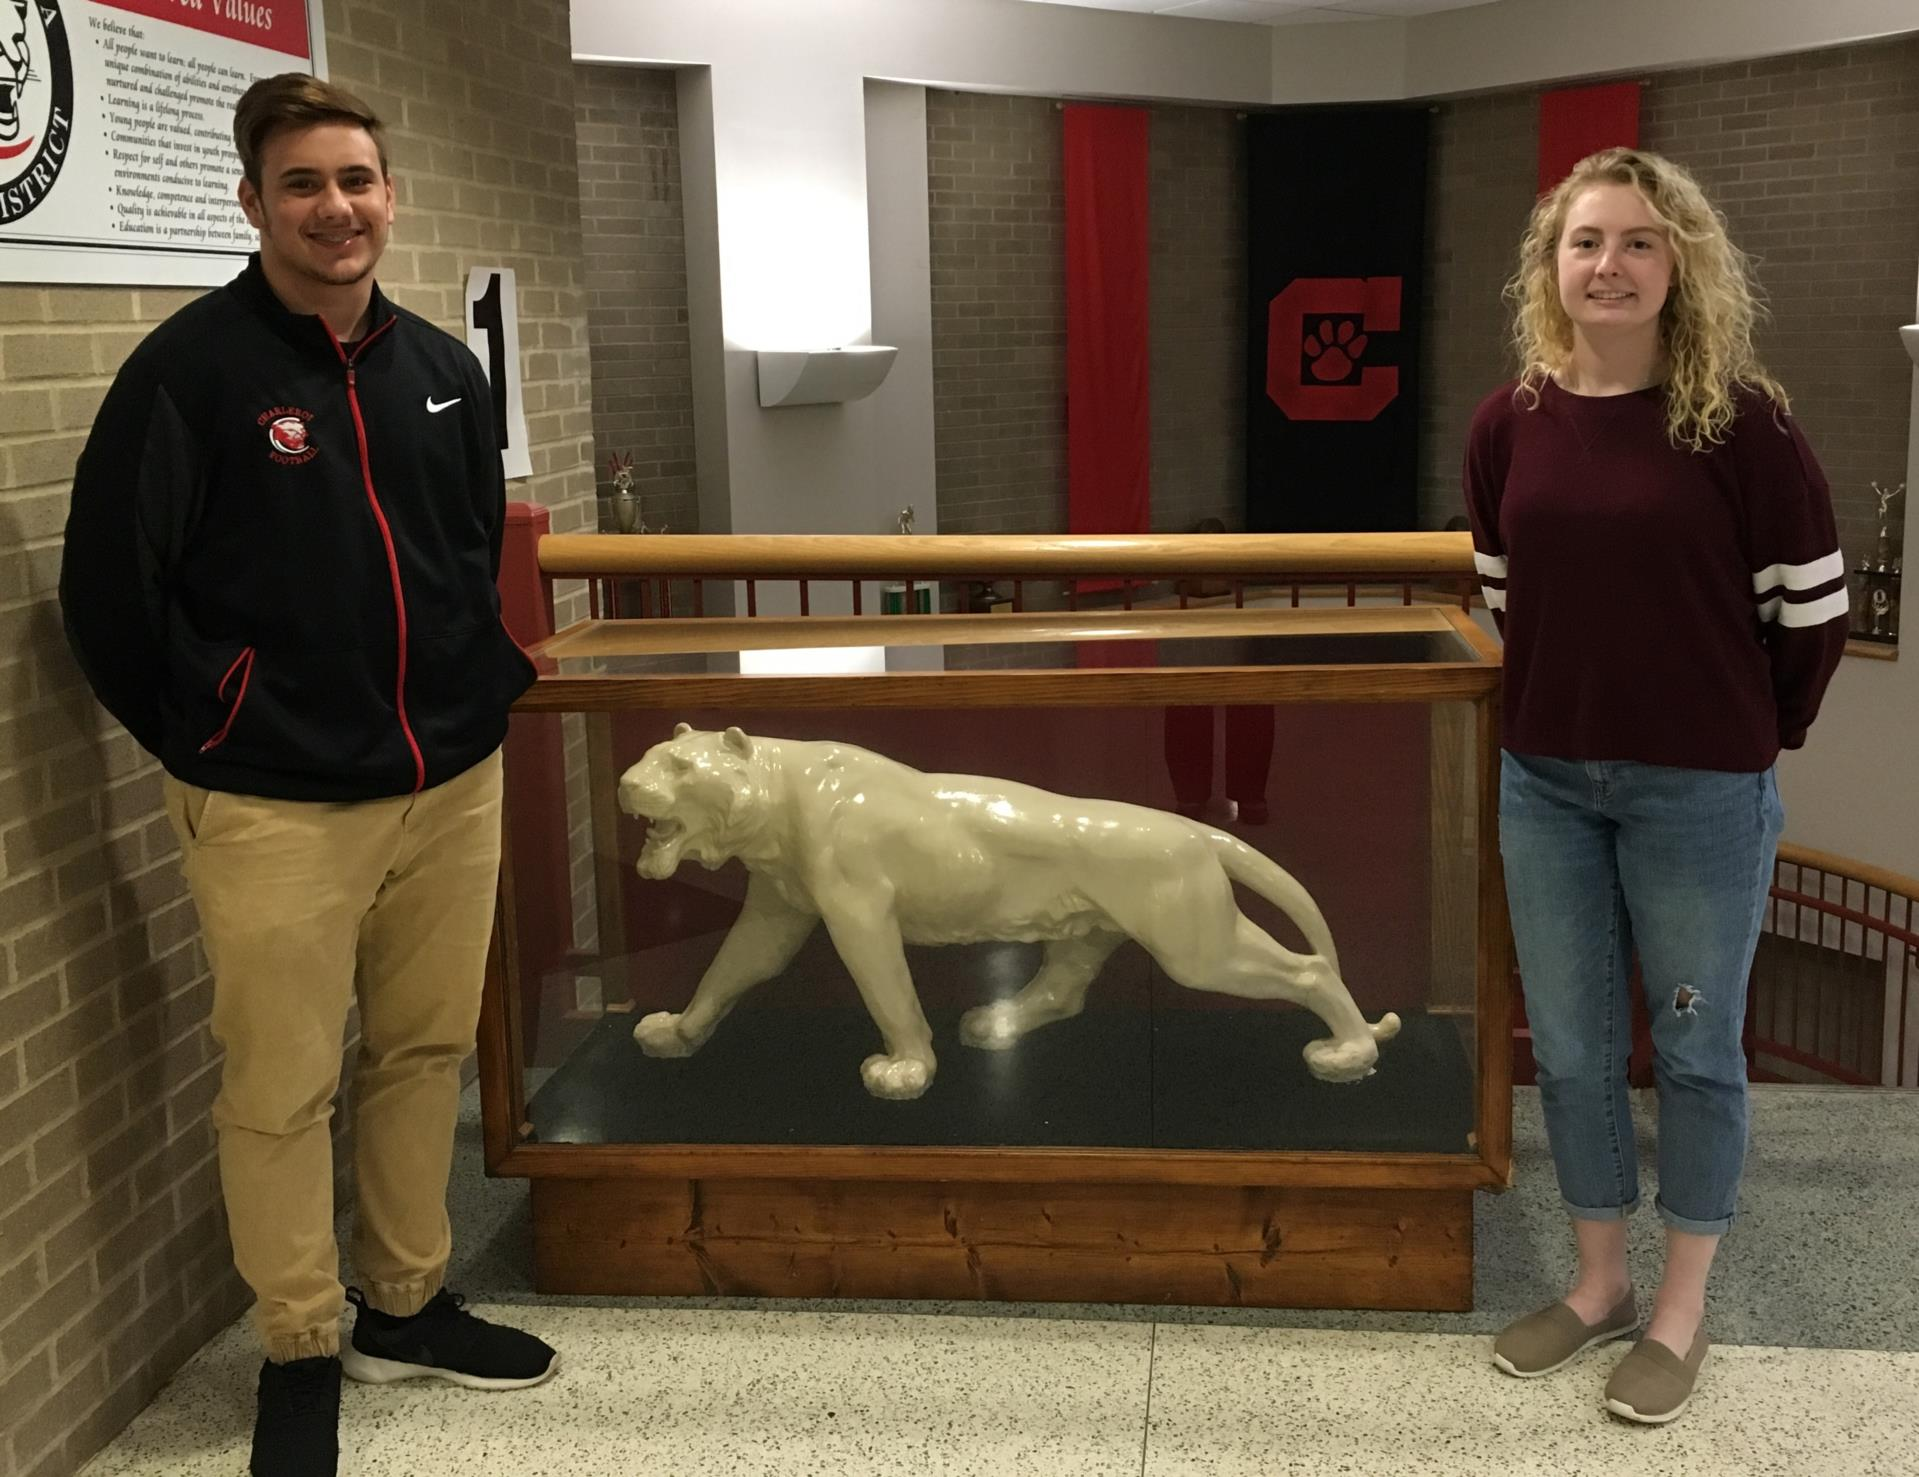 The Charleroi High School selections for the Centennial Chevrolet Scholar-Athletes award are Jake Stefanick and Sierra Short.